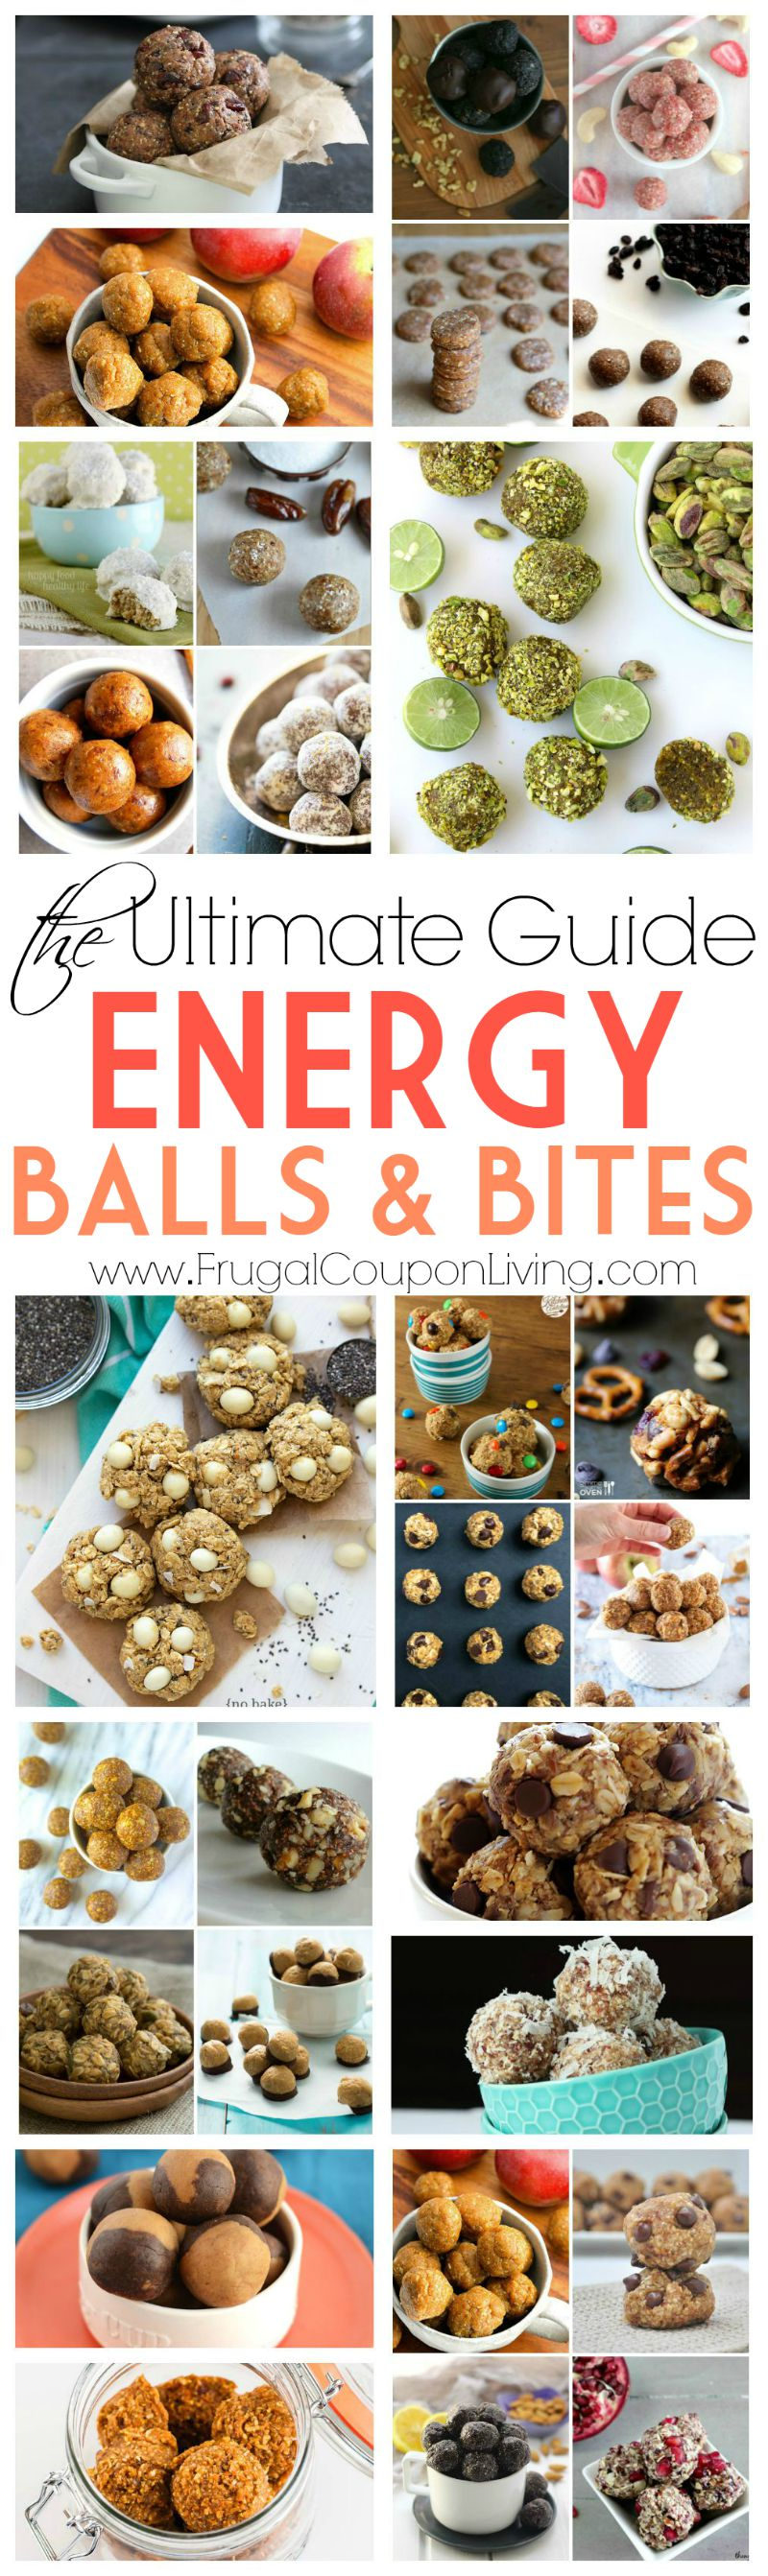 energy-bites-Collage-frugal-coupon-living